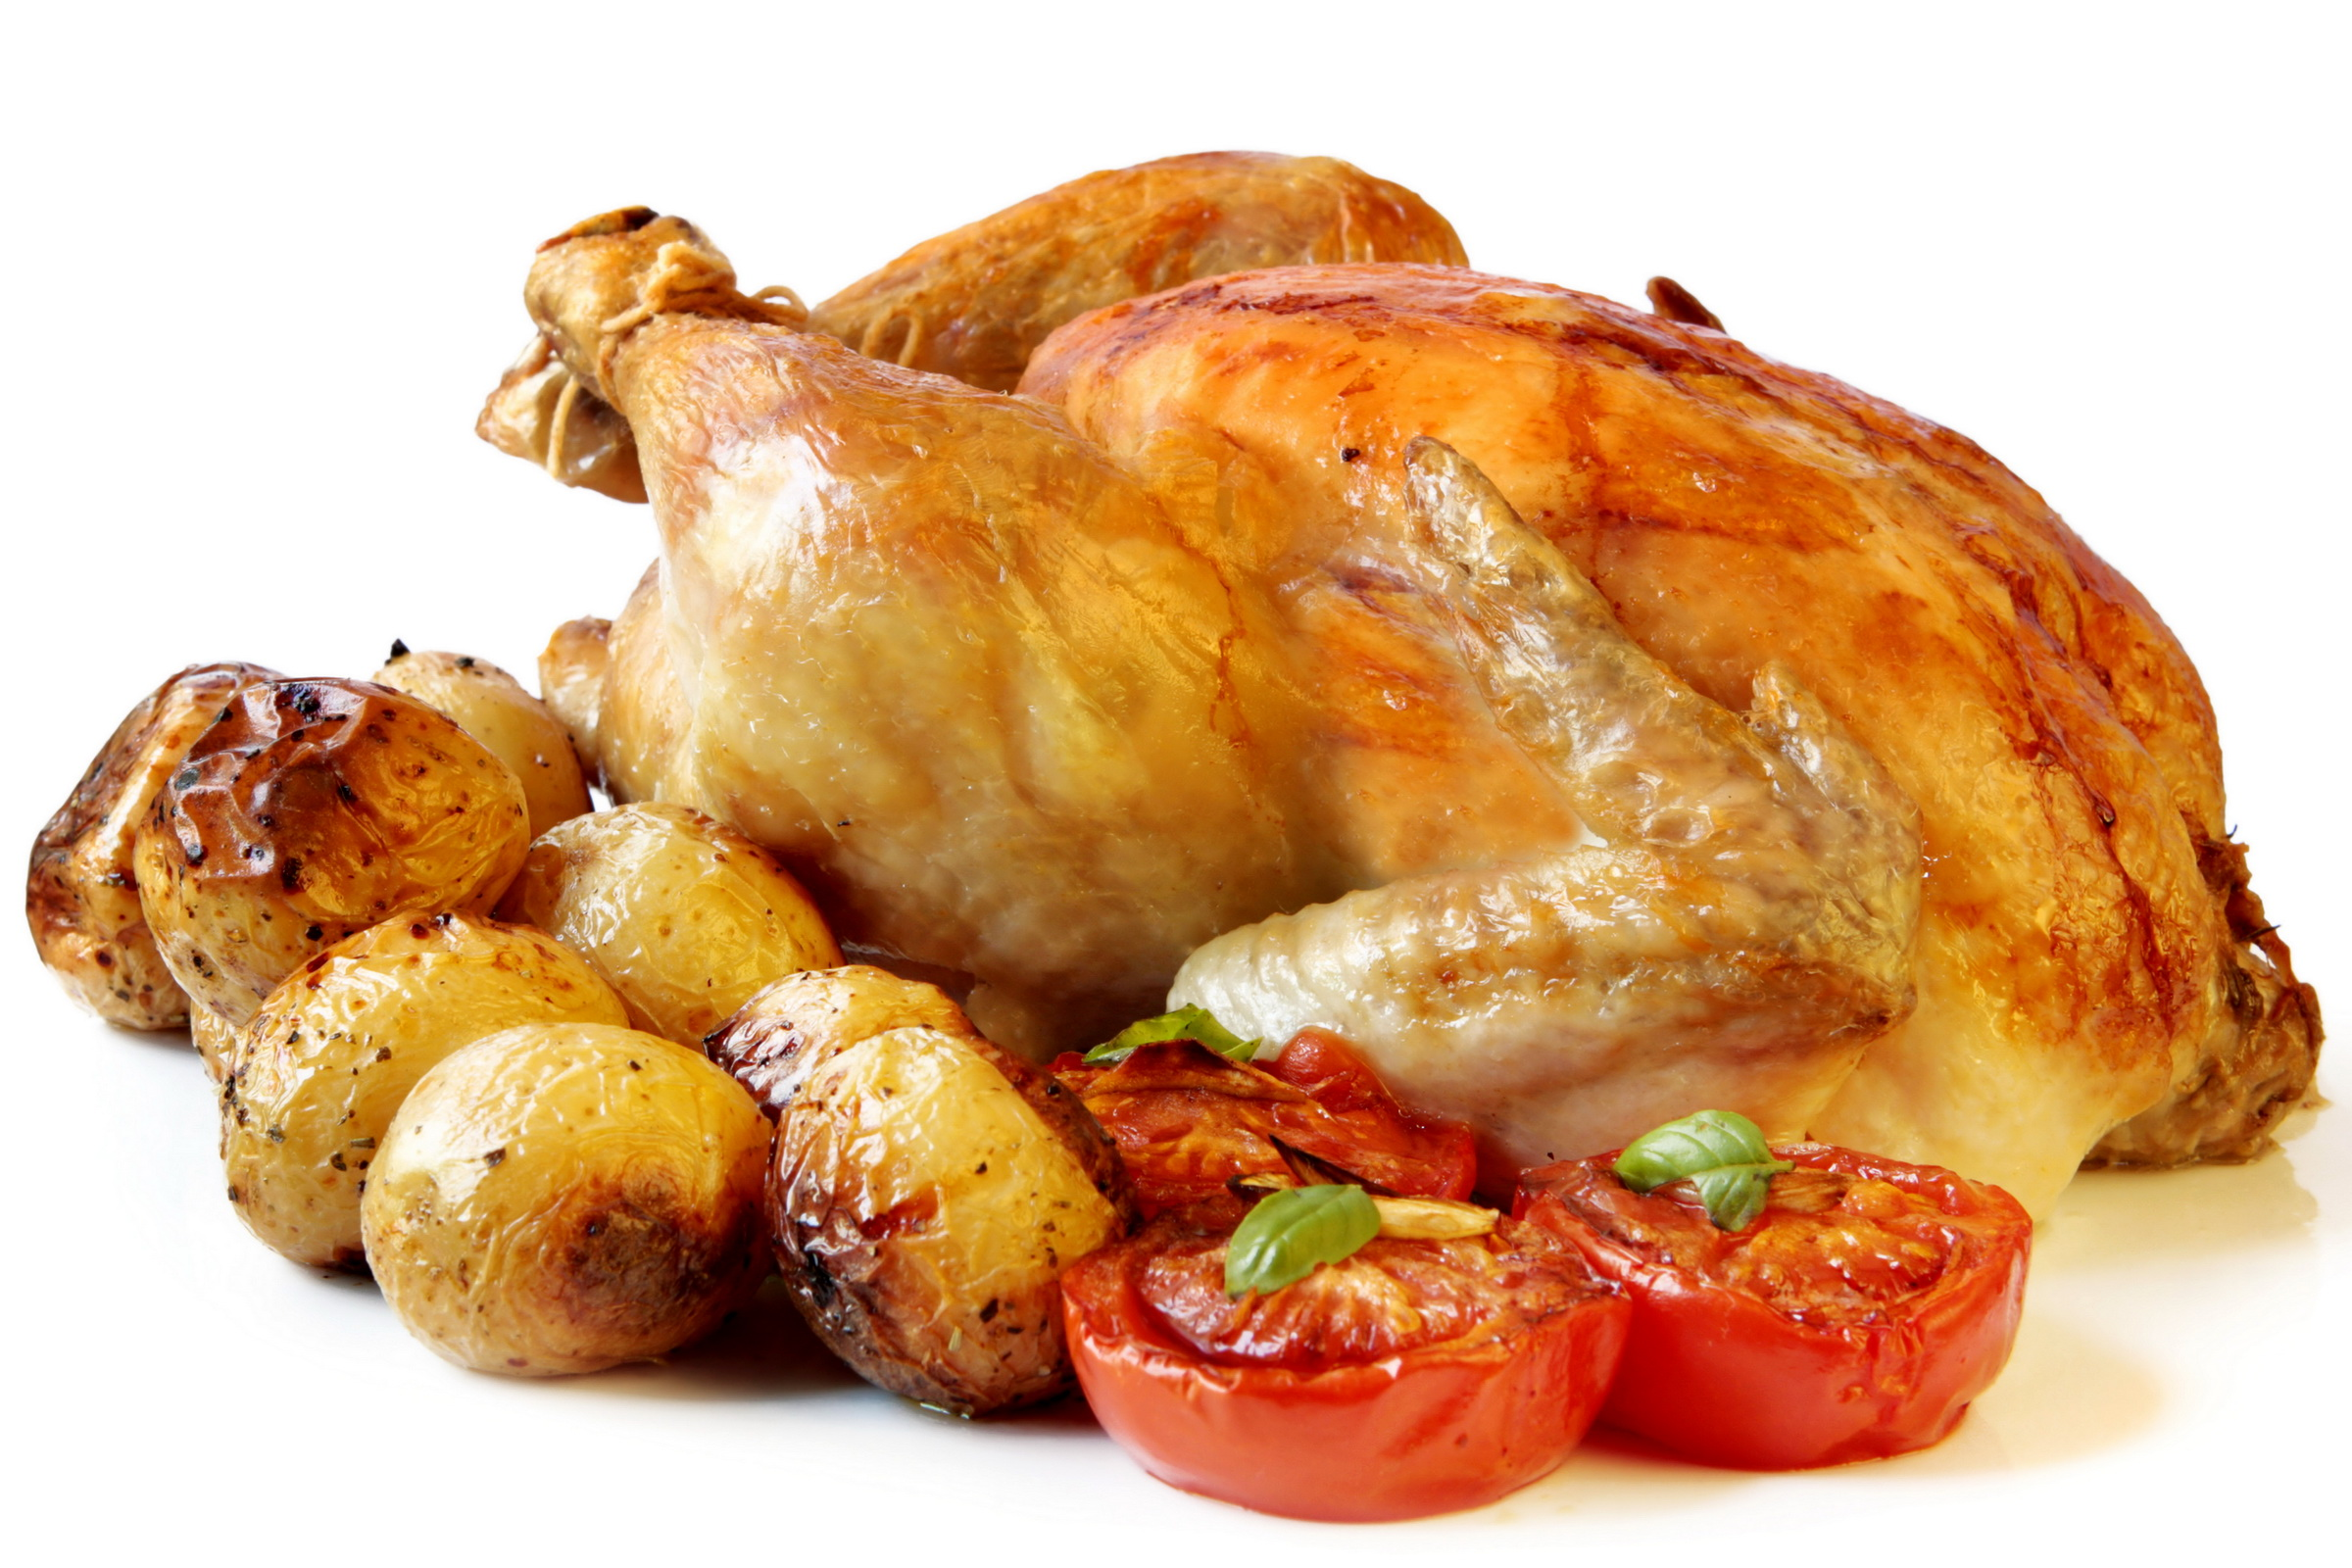 Whole chicken dishes